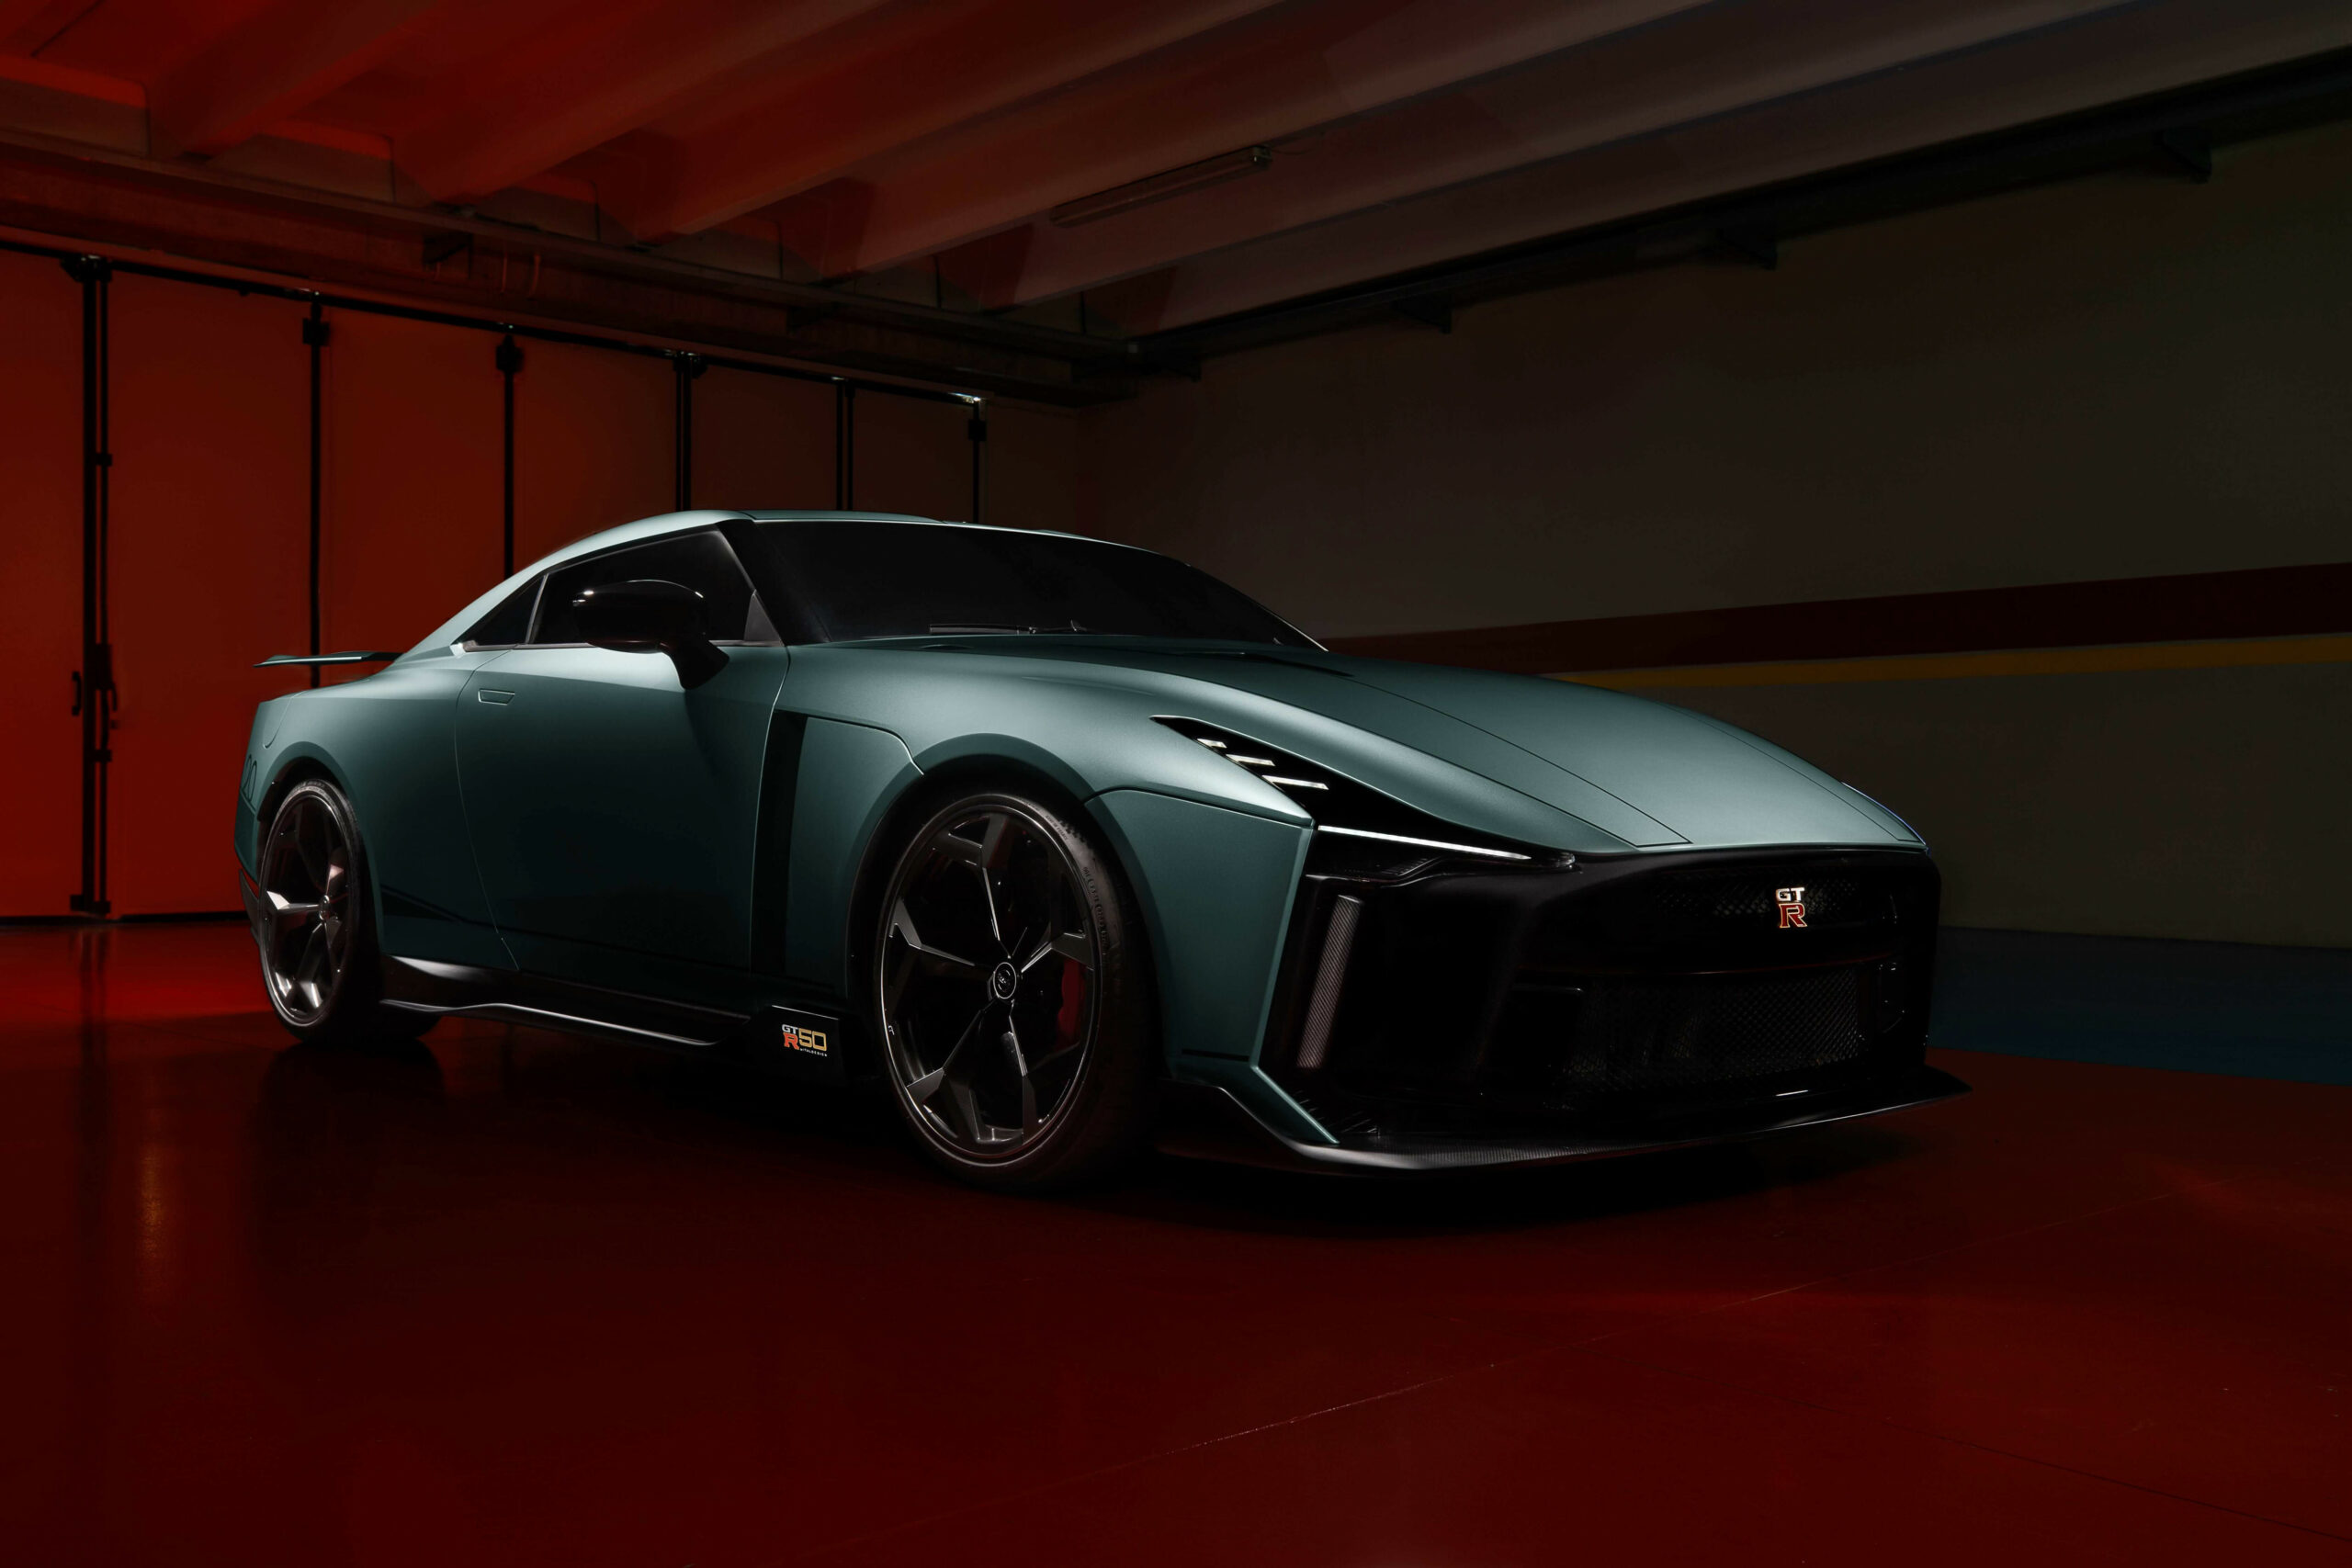 Redesign and Concept 2022 Nissan Gt R